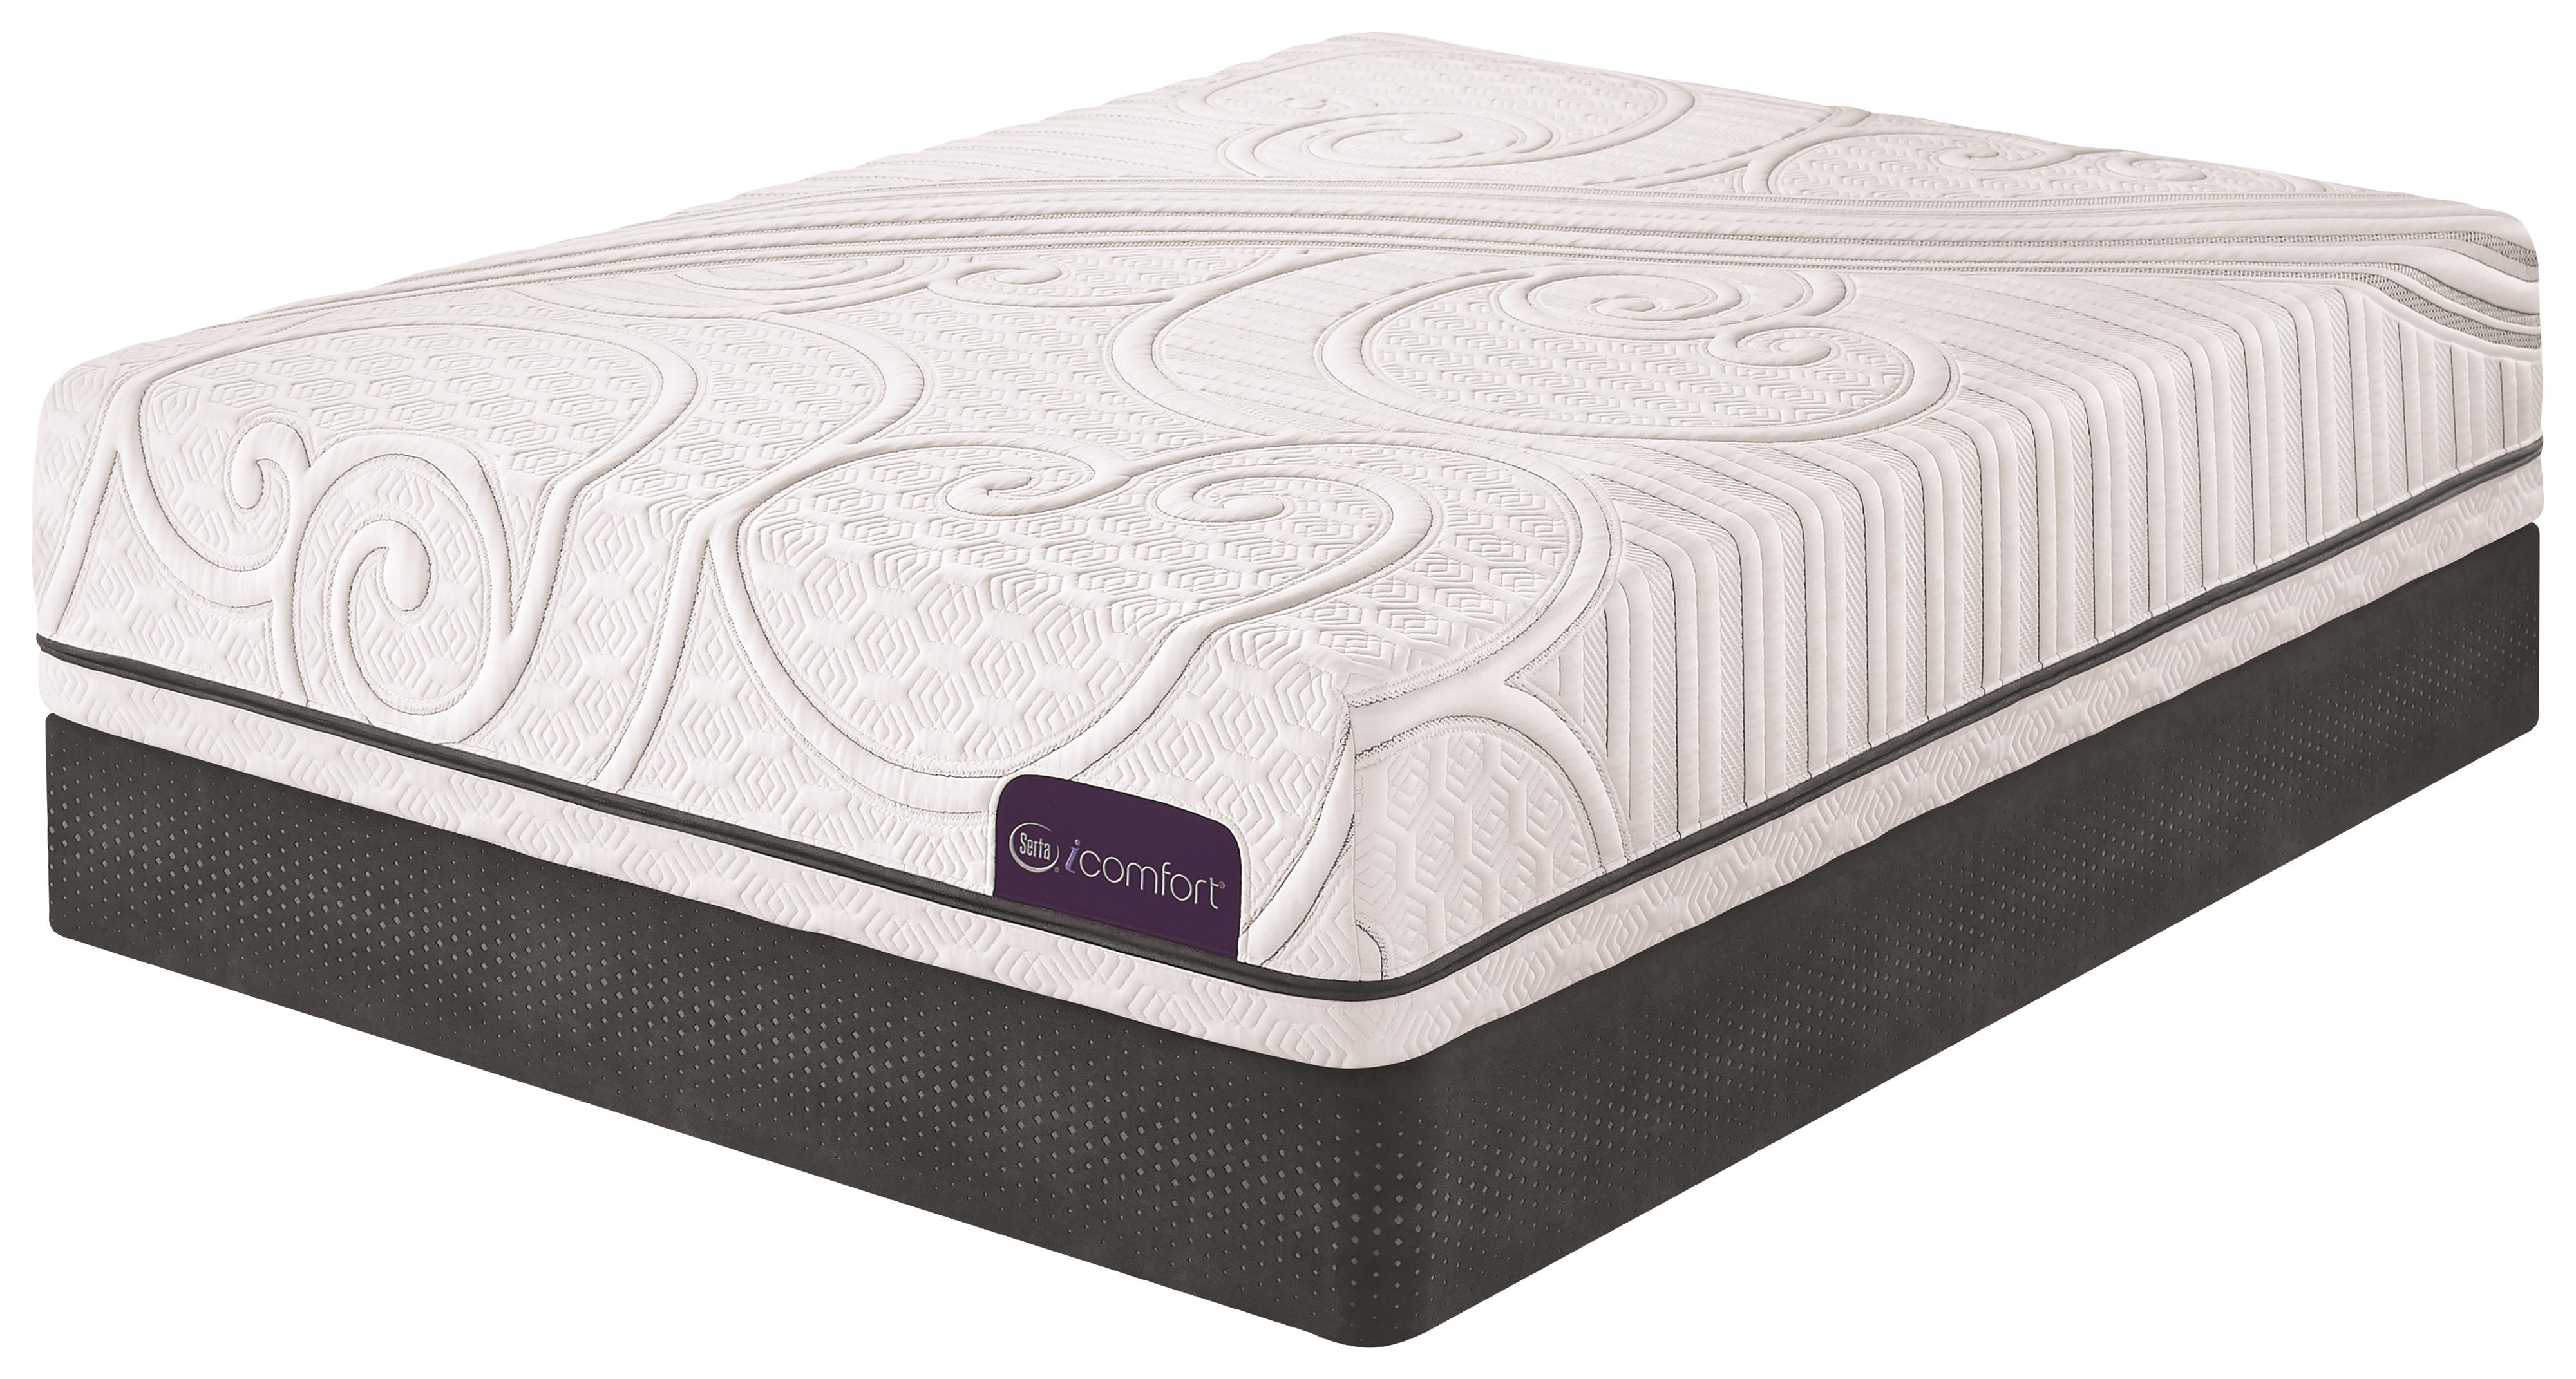 Serta iComfort Guidance Full Gel Memory Foam Mattress Set - Item Number: Guidance-F+StabL-Base-F